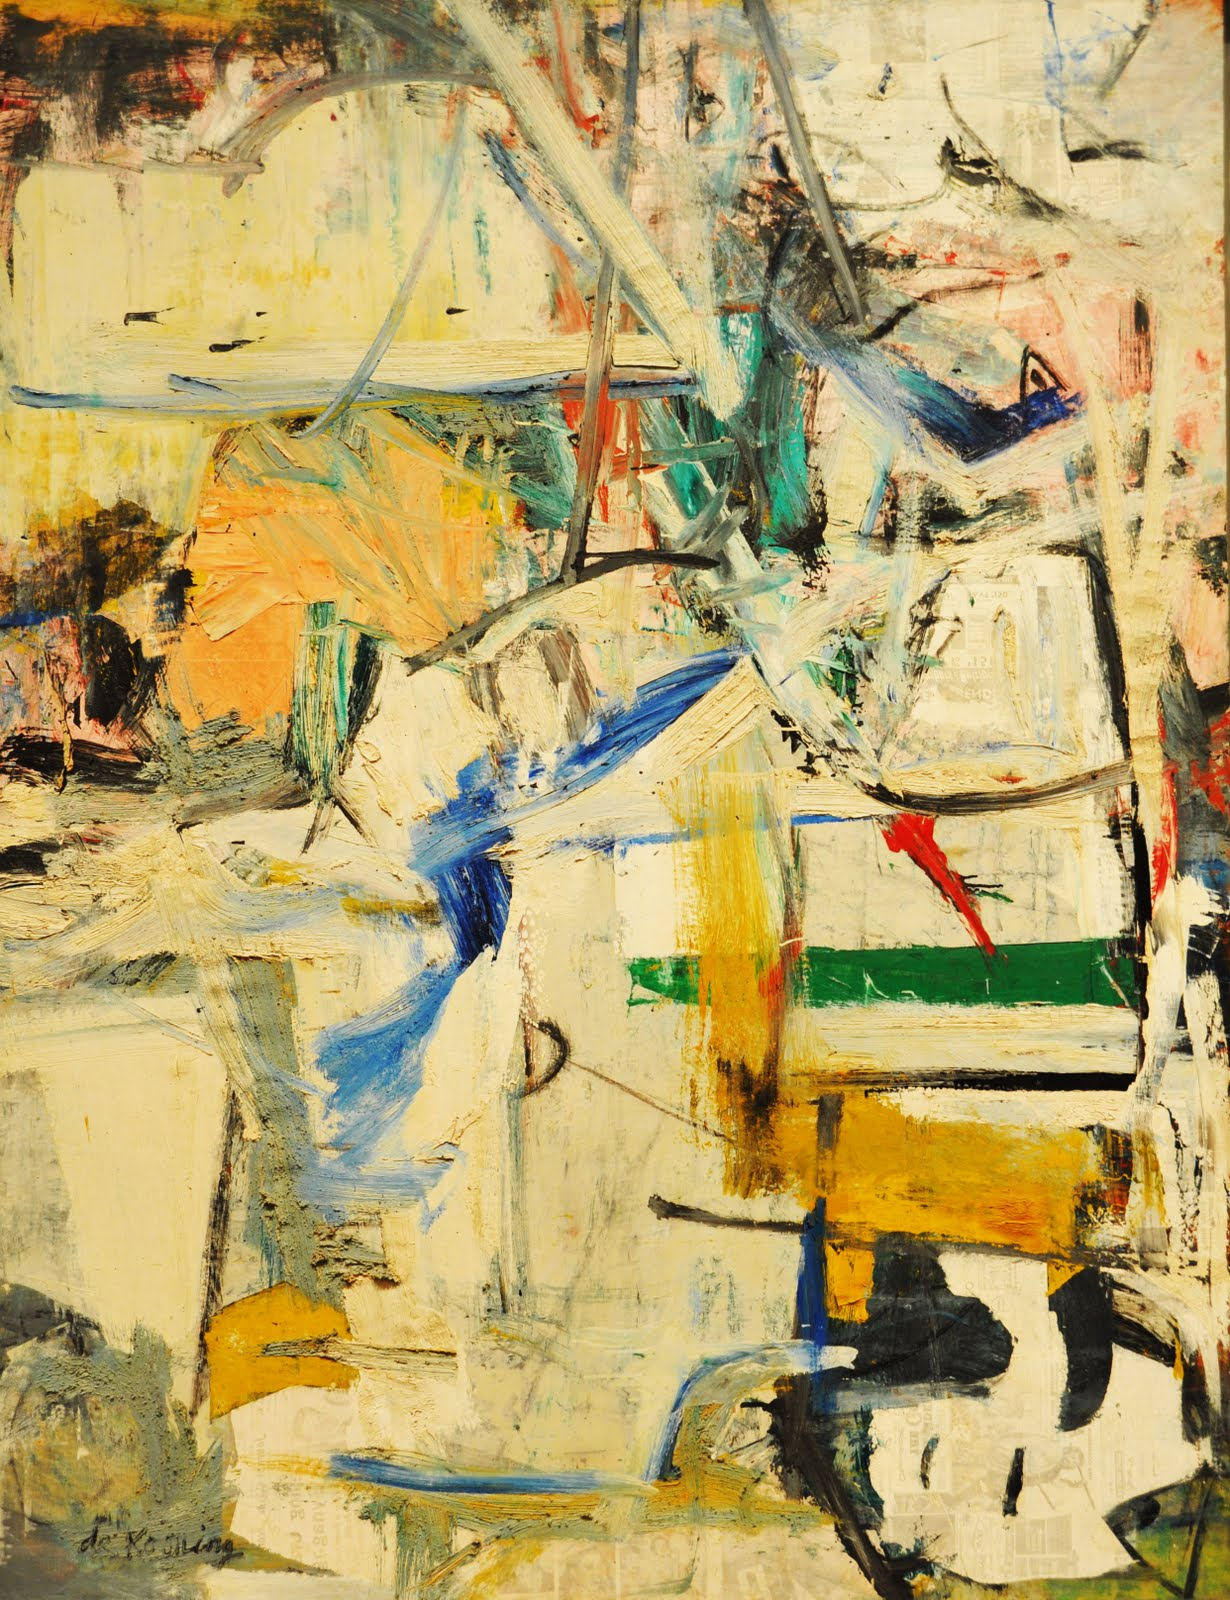 willem de kooning San francisco — richard diebenkorn: the berkeley years, 1953–1966, on  view at the de young museum from june 22 through september 29, 2013, will.